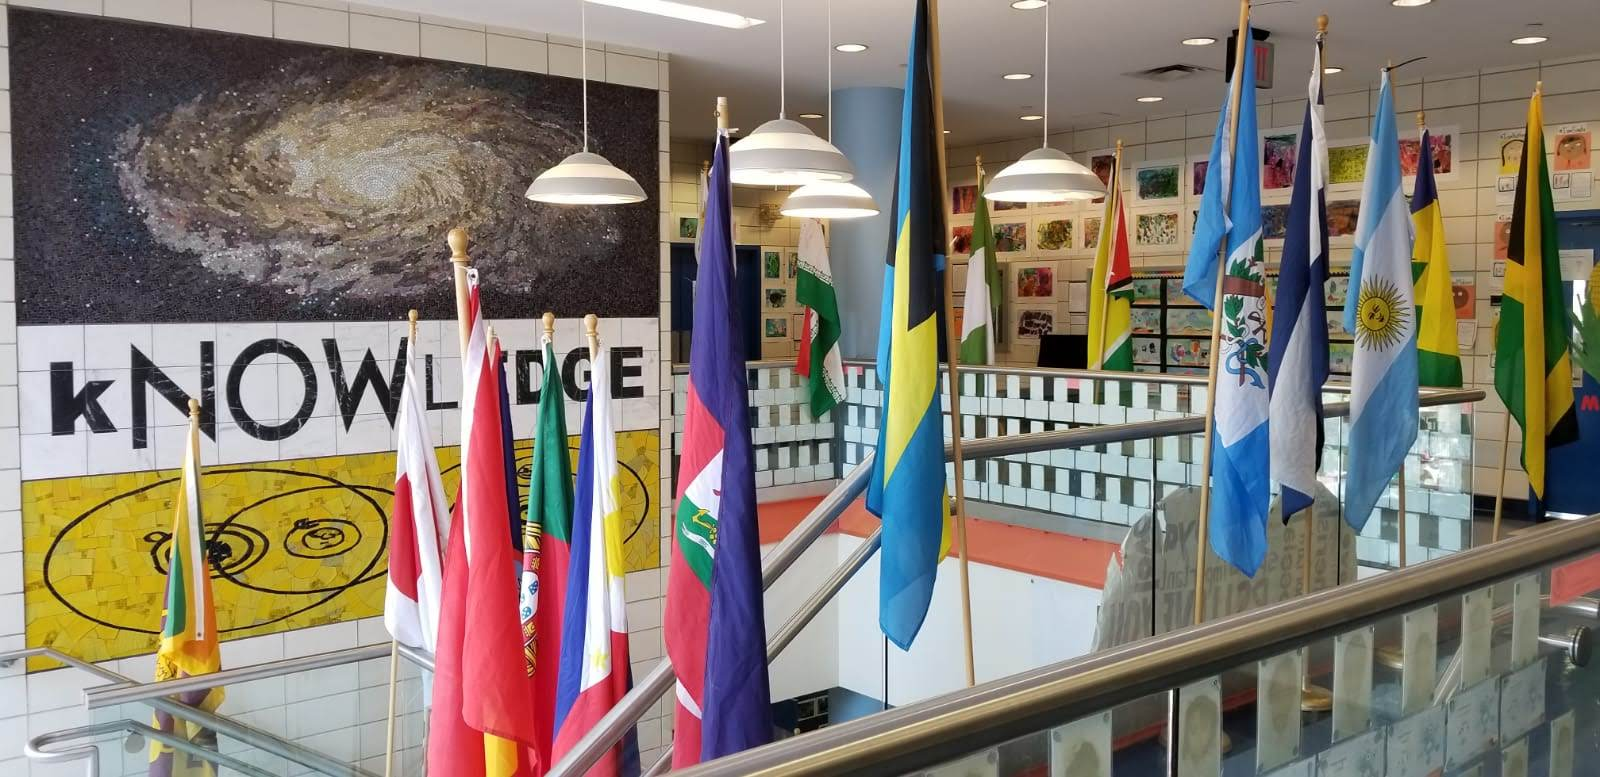 flags in school representing different cultures in community